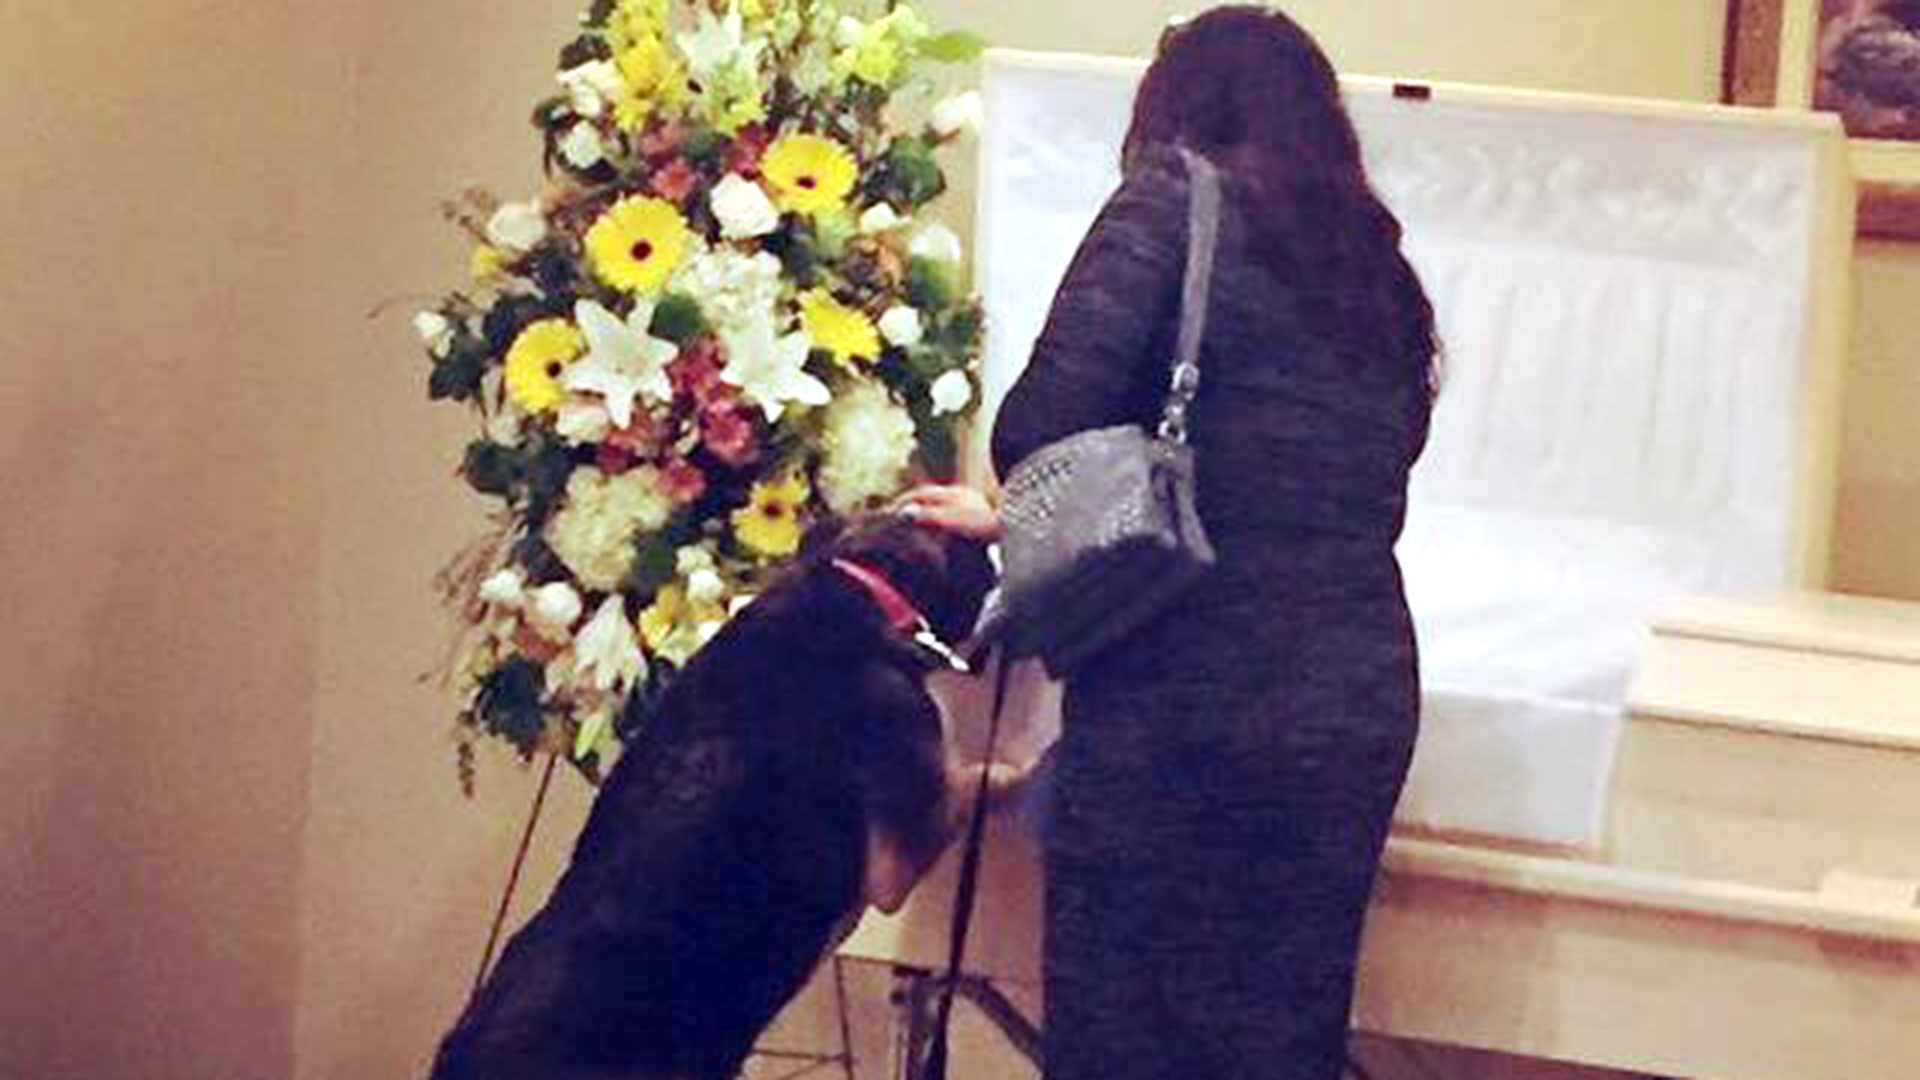 Dog visits funeral home for 1 last goodbye to beloved owner izmirmasajfo